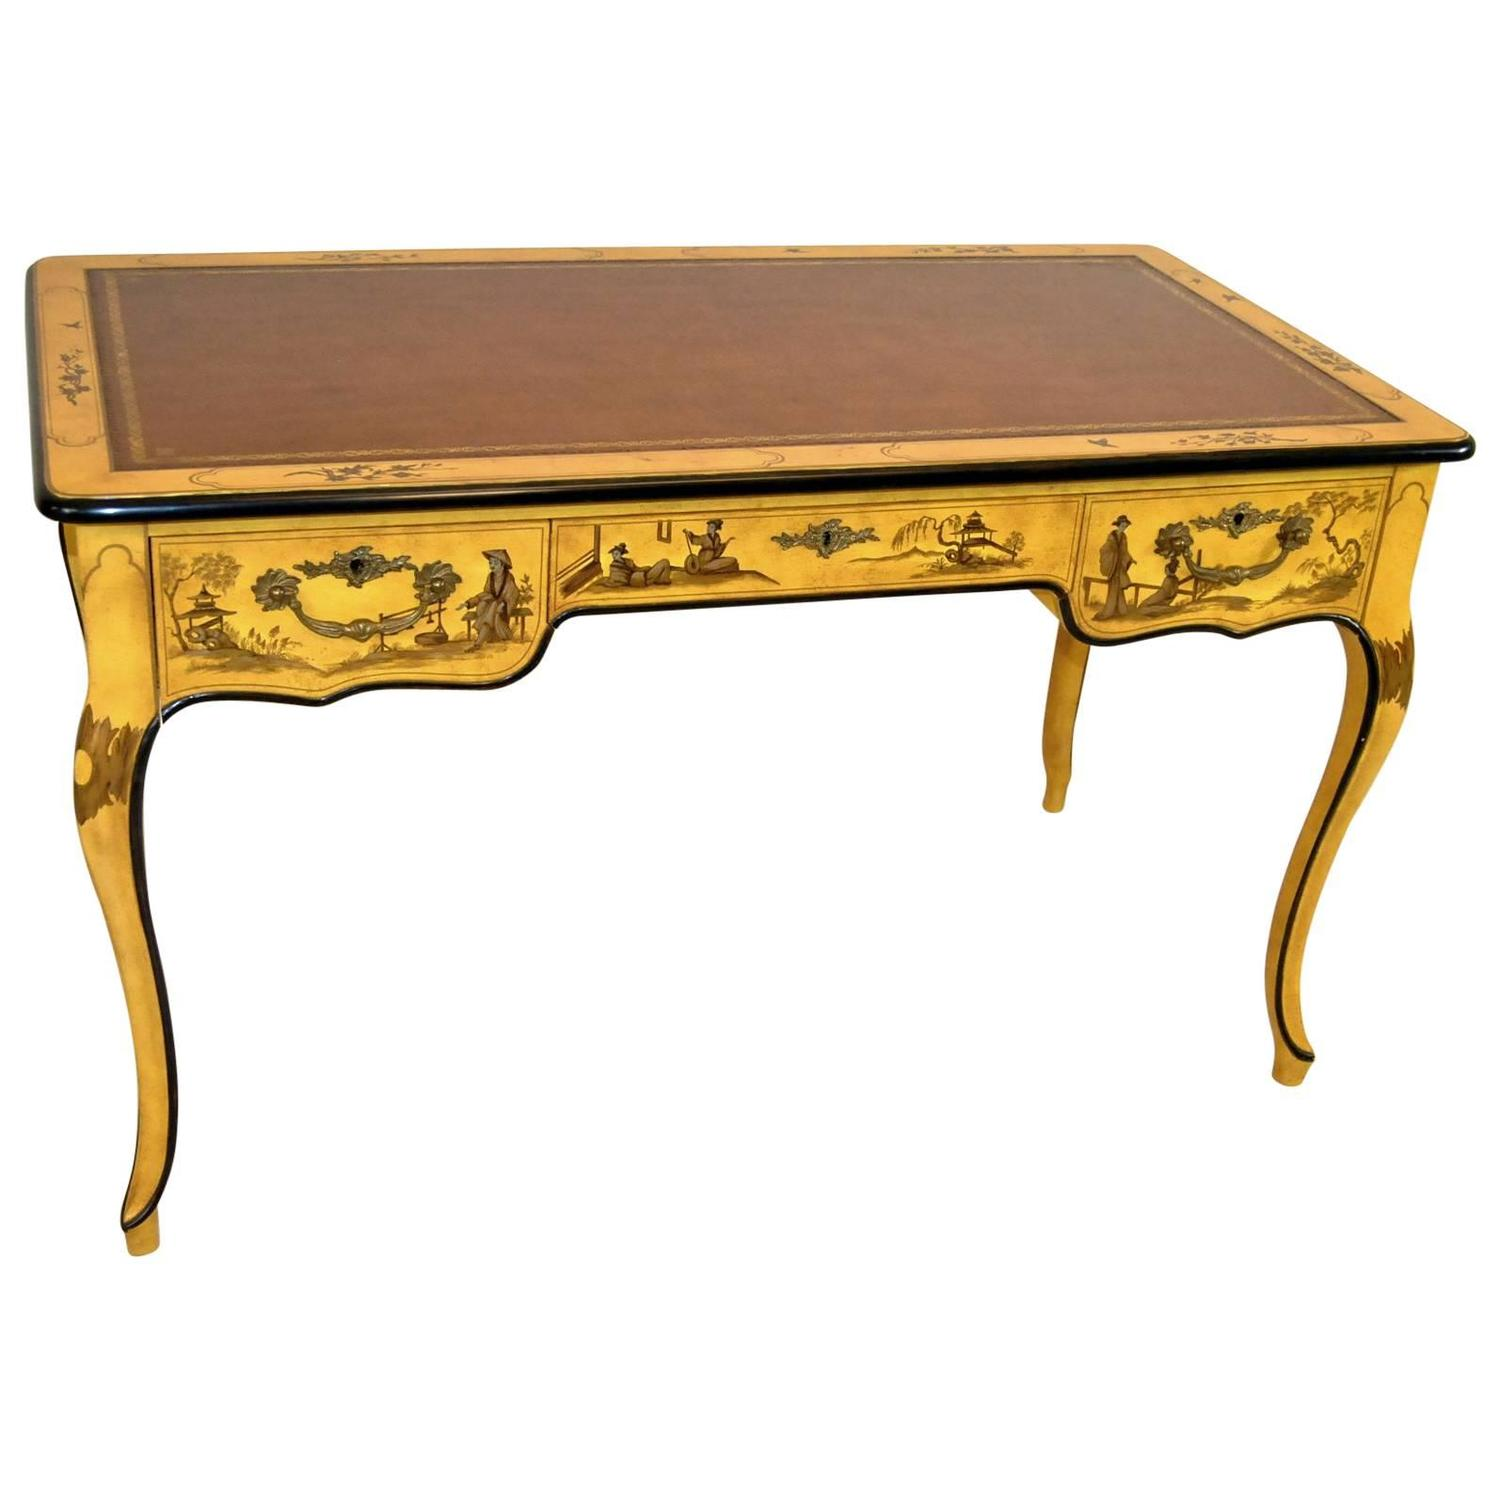 Burl Walnut Writing Table Desk by Baker Furniture For Sale at 1stdibs